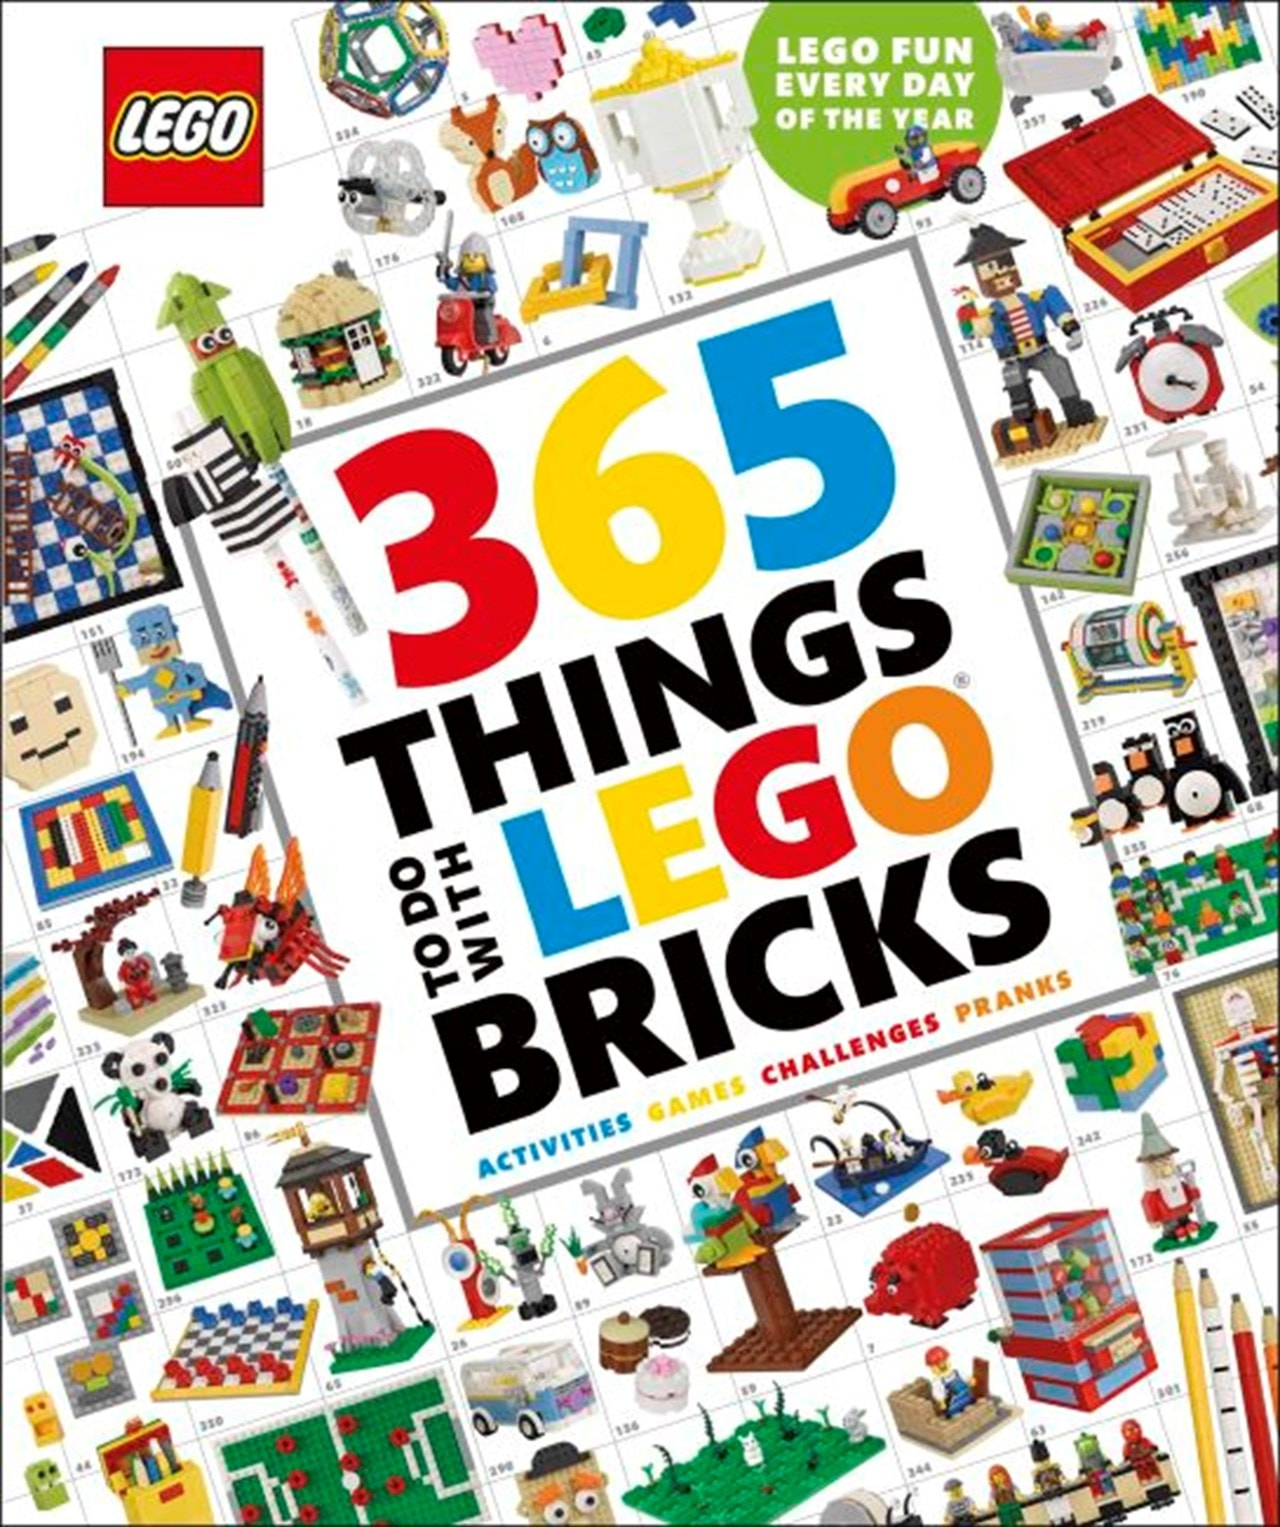 365 Things To Do With Lego Bricks - 1